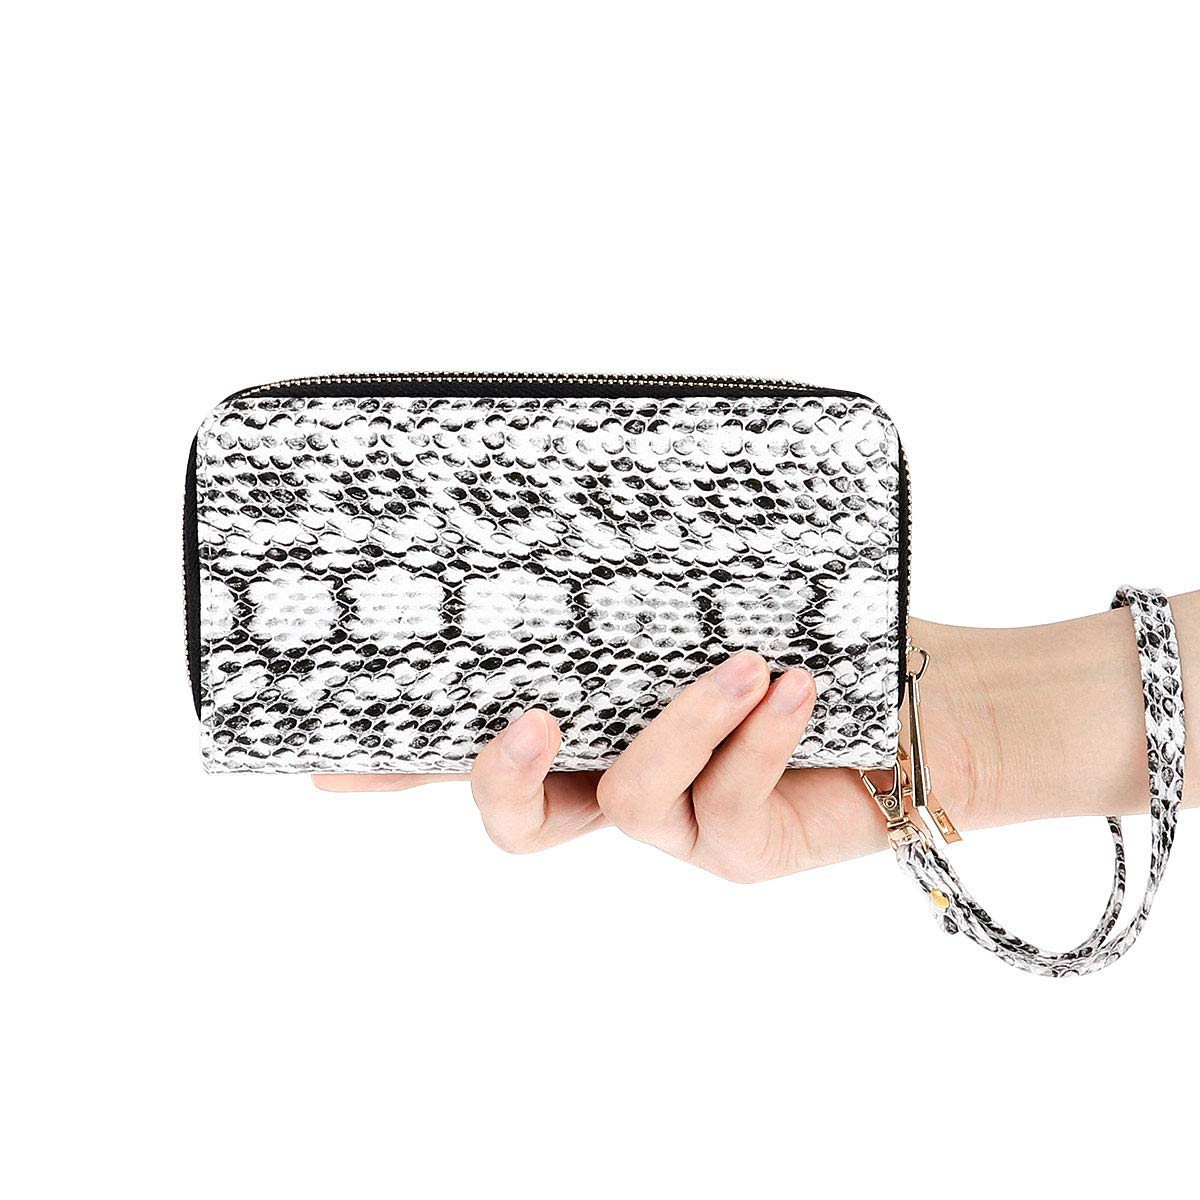 HAWEE Cellphone Wallet Dual Zipper Wristlet Purse with Credit Card Case/Coin Pouch/Smart Phone Pocket Soft Leather for Women or Lady, SnakeSkin White by HAWEE (Image #7)